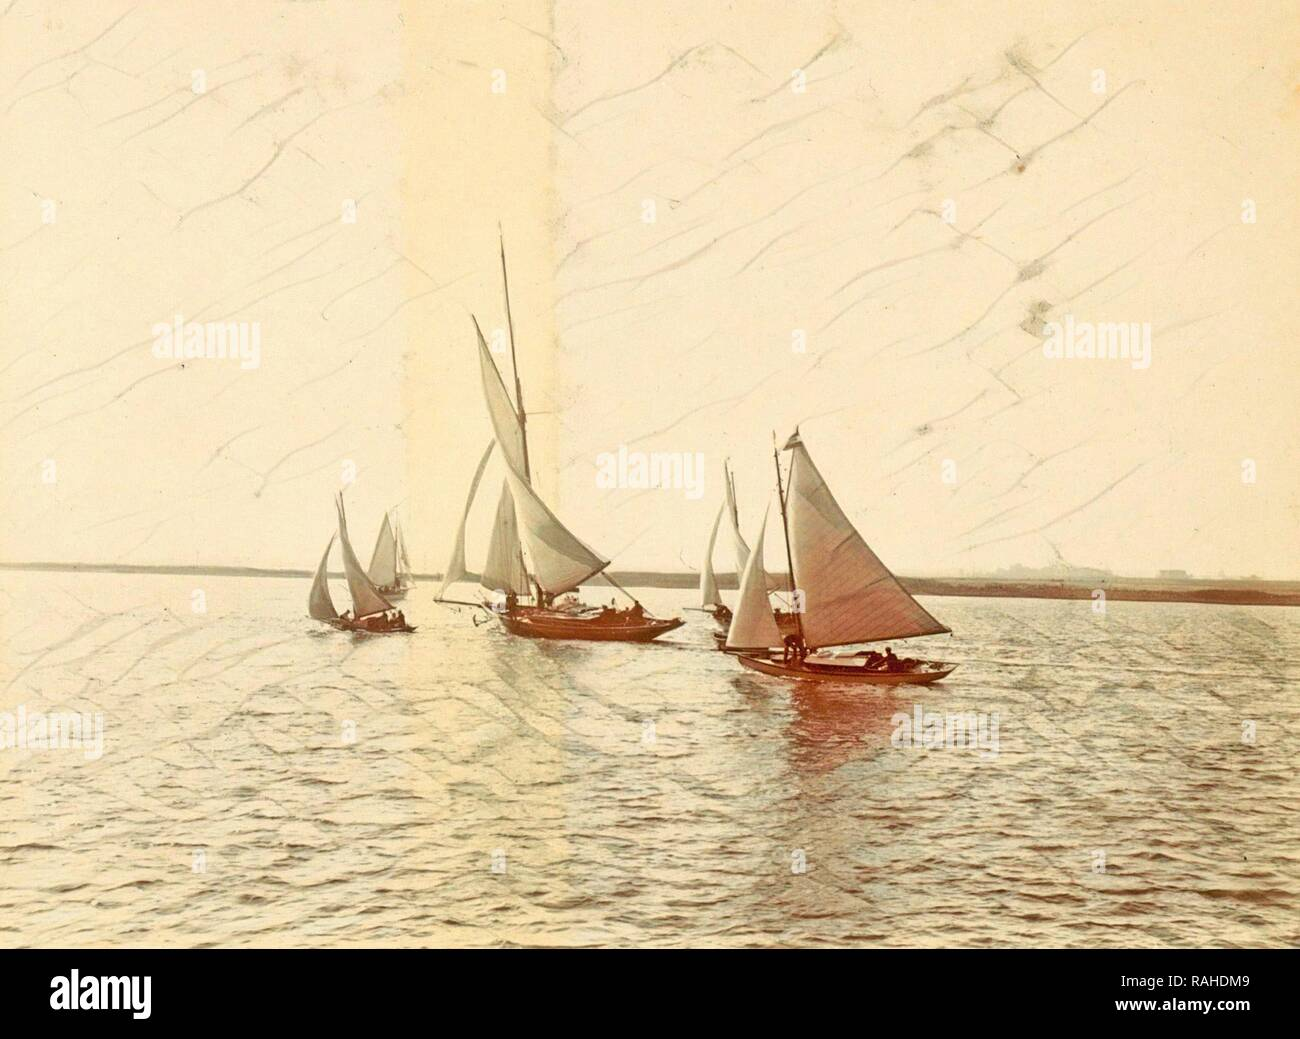 Sailing vessels on the water, Anonymous, c. 1900 - c. 1910. Reimagined by Gibon. Classic art with a modern twist reimagined - Stock Image